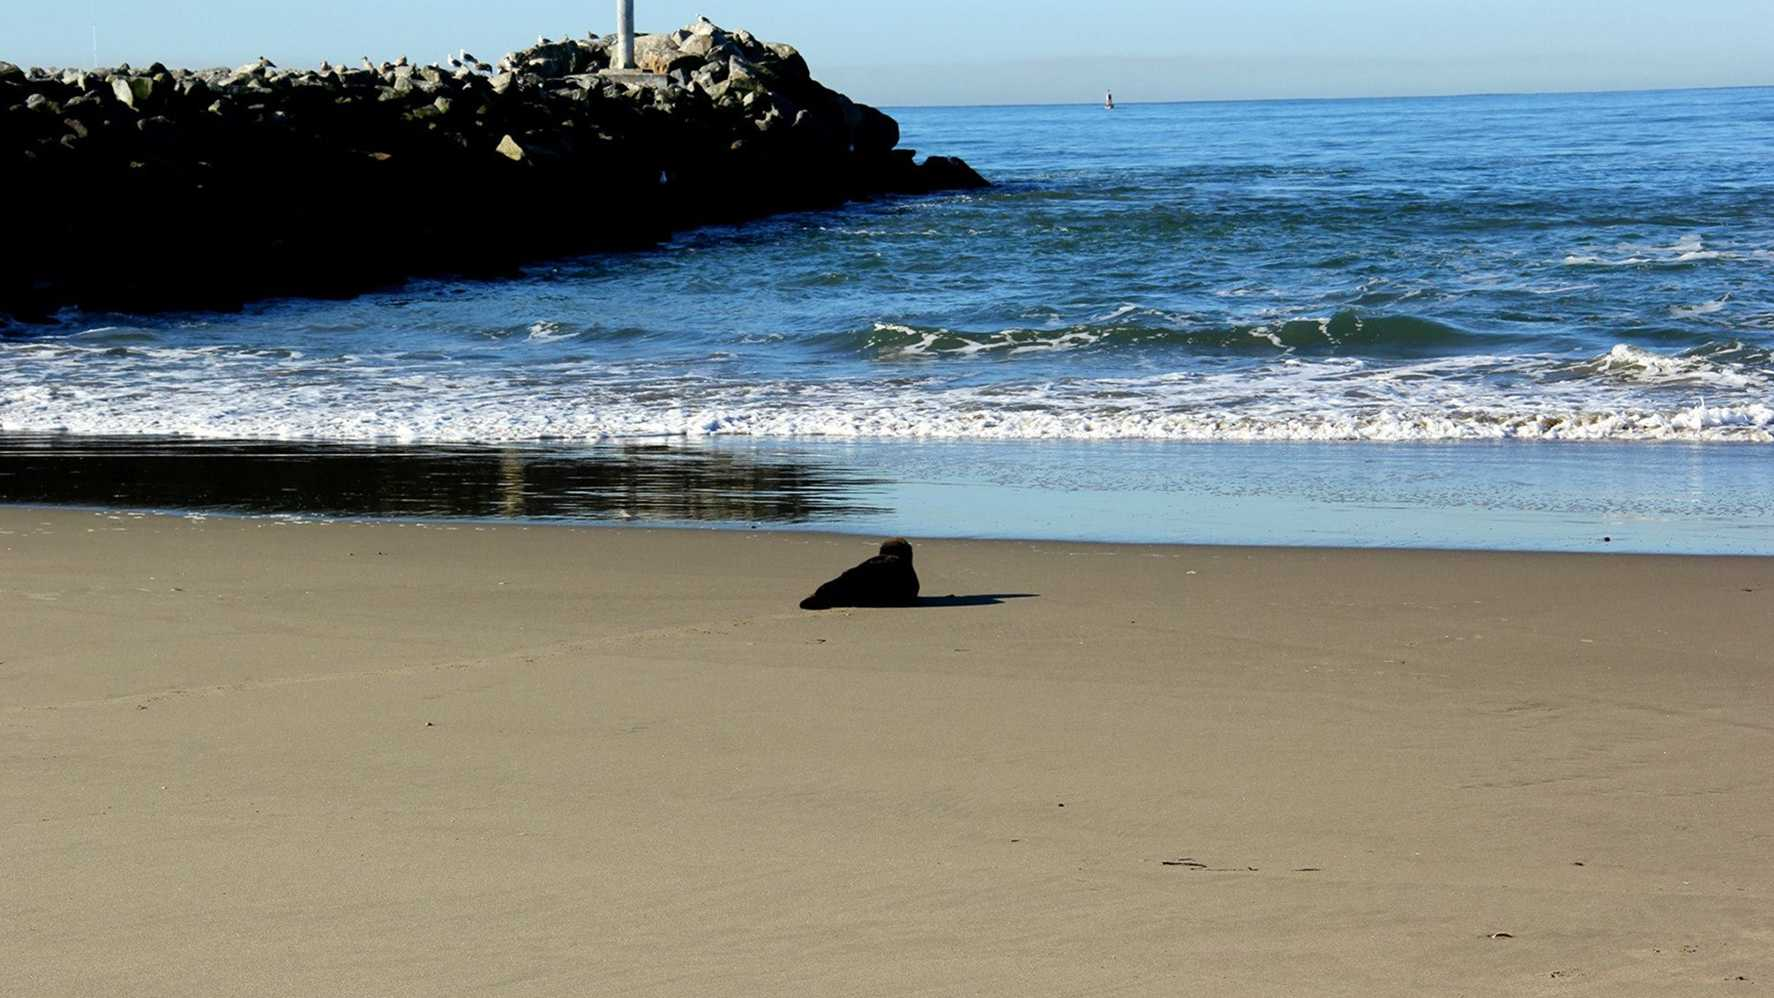 A sea otter makes its way to the ocean in Moss Landing.